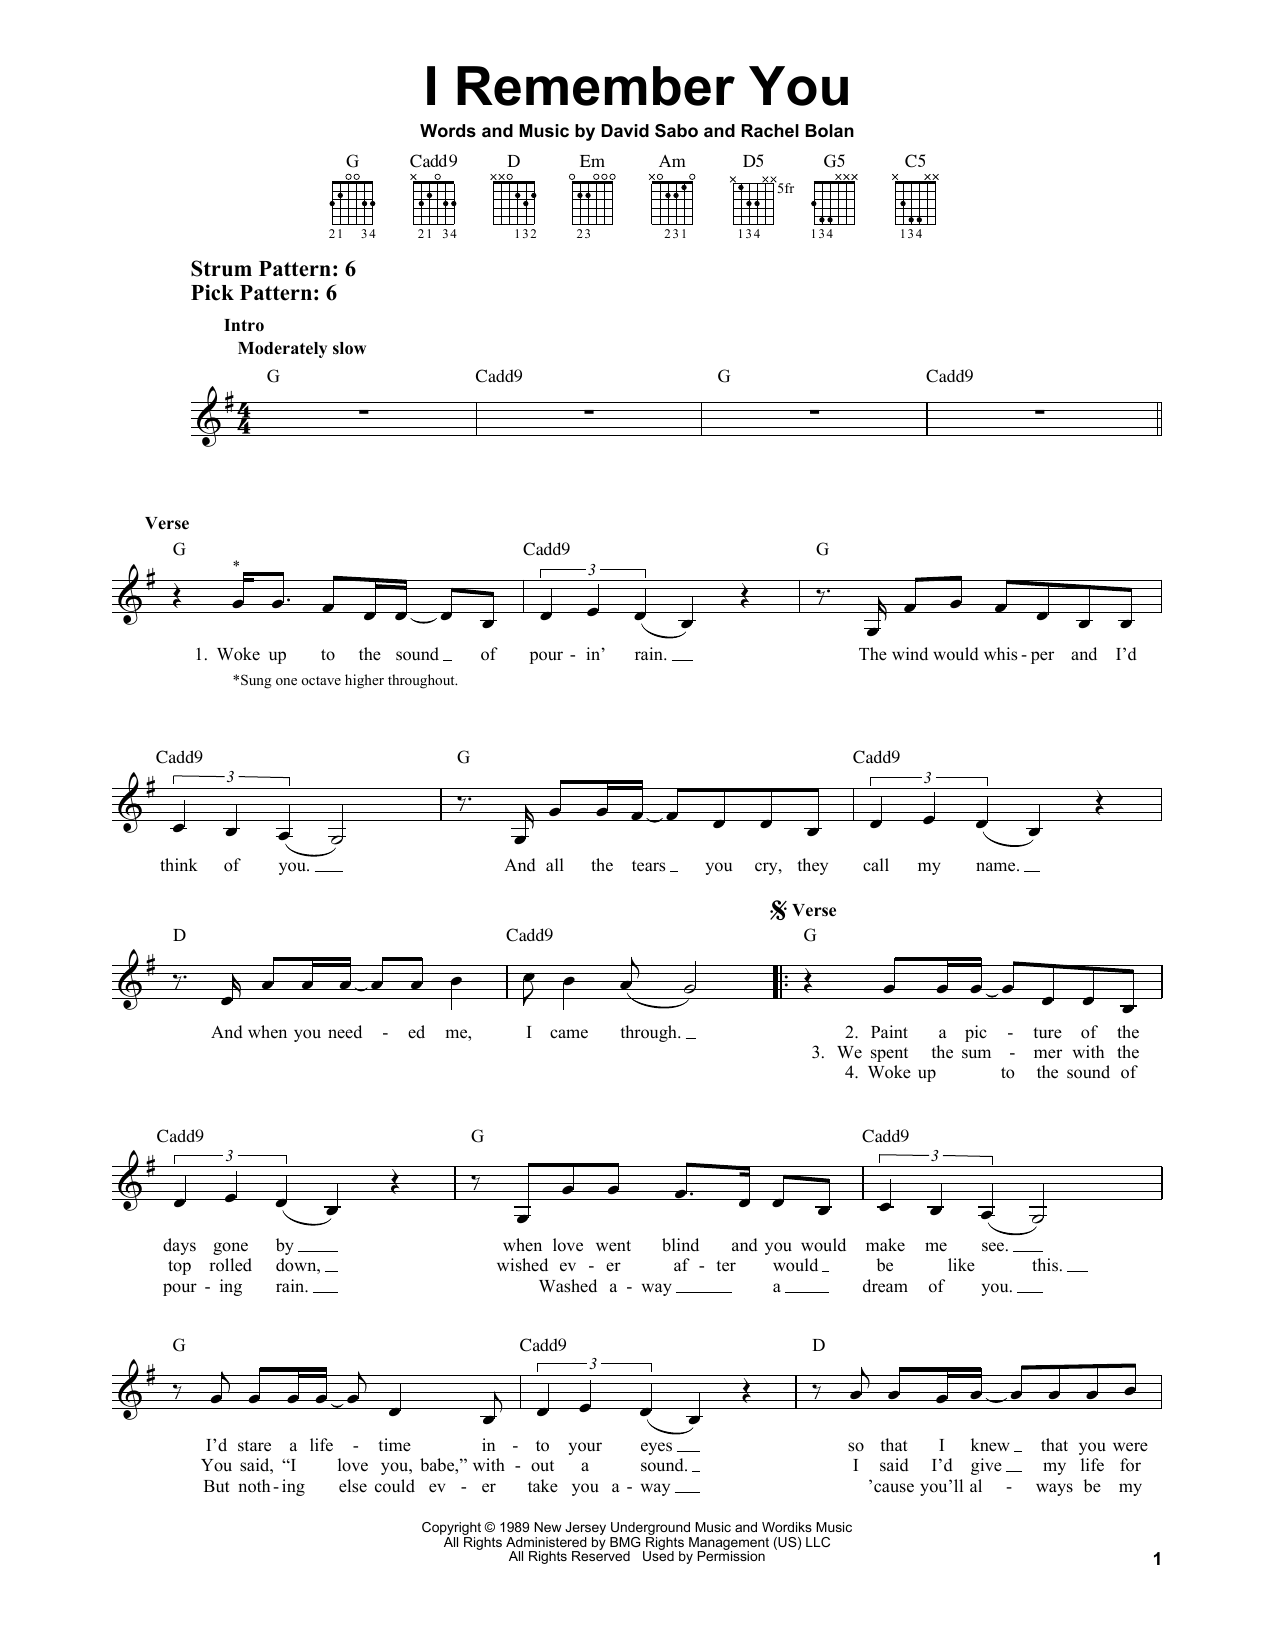 Sheet Music Digital Files To Print Licensed Skid Row Digital Sheet